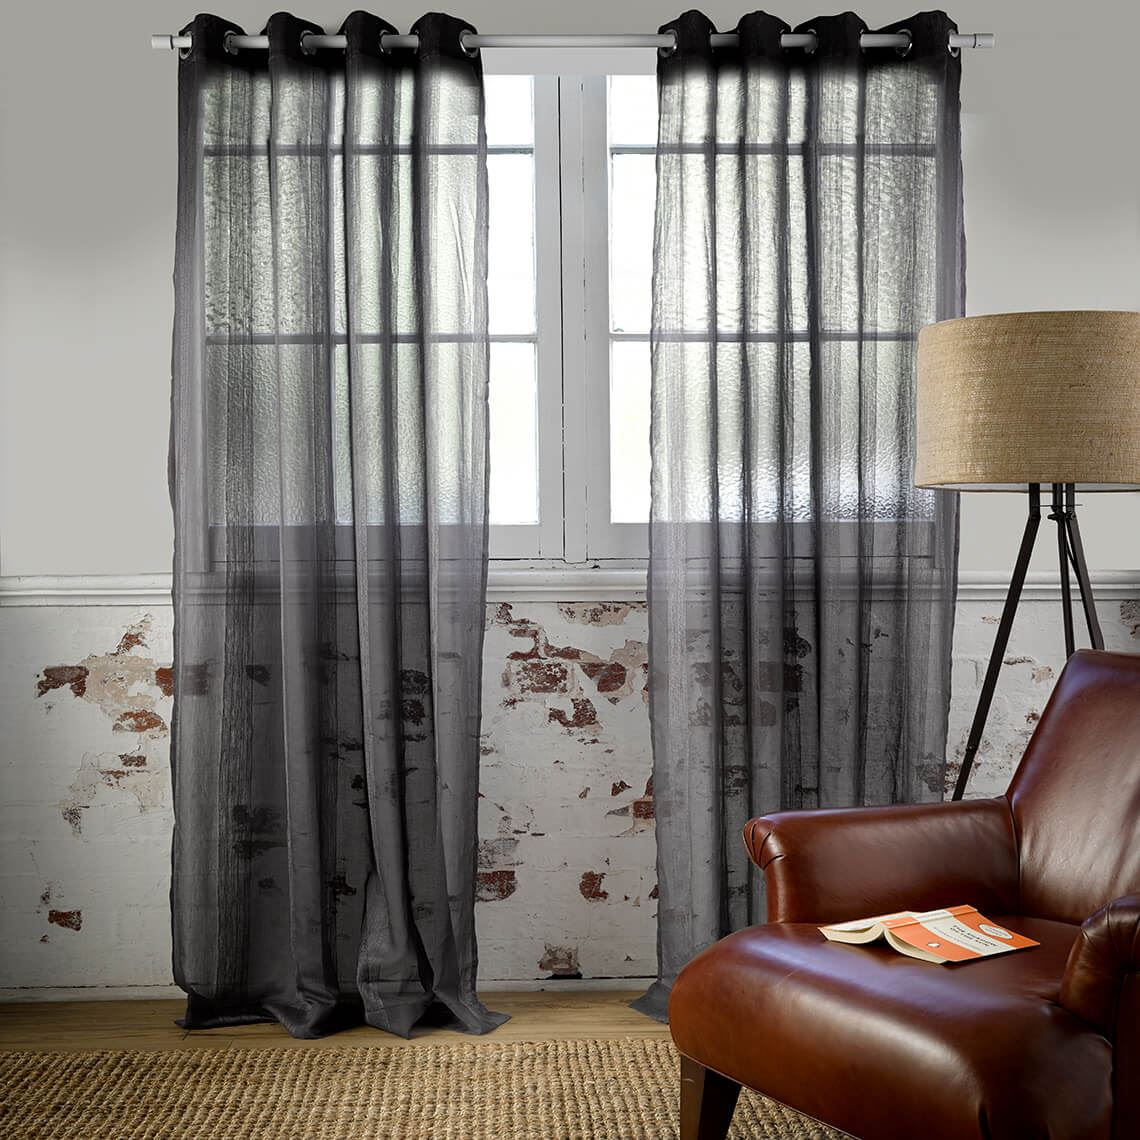 Houston Sheer Eyelet Curtain Size W 180cm x D 1cm x H 250cm in Charcoal 100% Polyester/Stainless Steel Freedom by Freedom, a Curtains for sale on Style Sourcebook